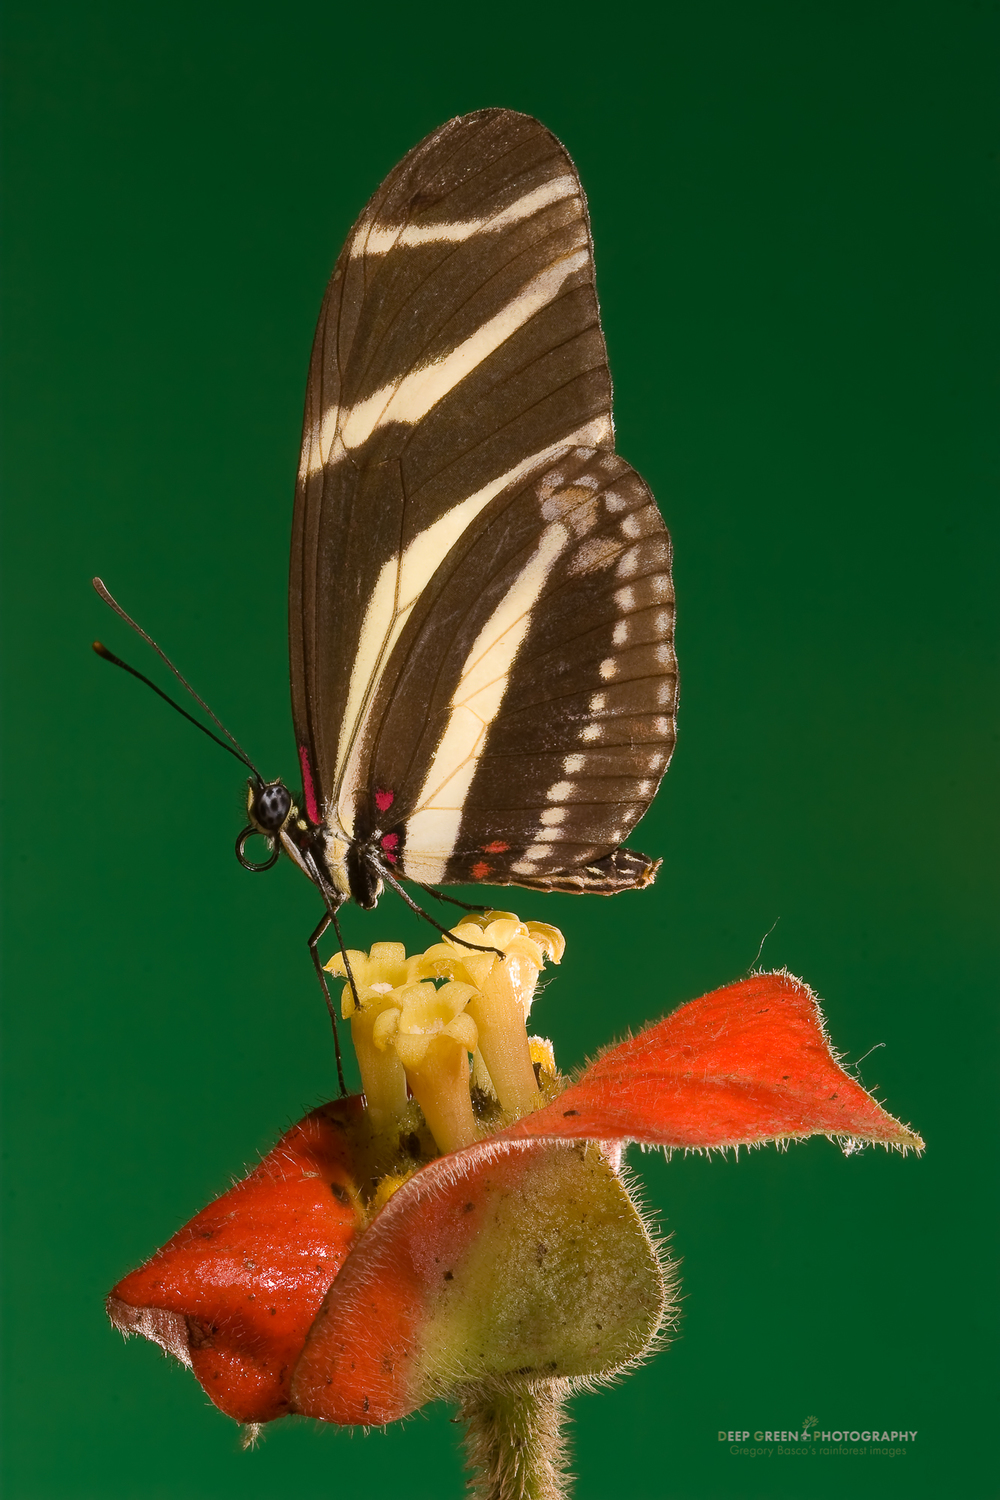 Zebra longwing butterfly (Heliconius charitonius) on Hot Lips flower, near Arenal Volcano NP, Costa Rica